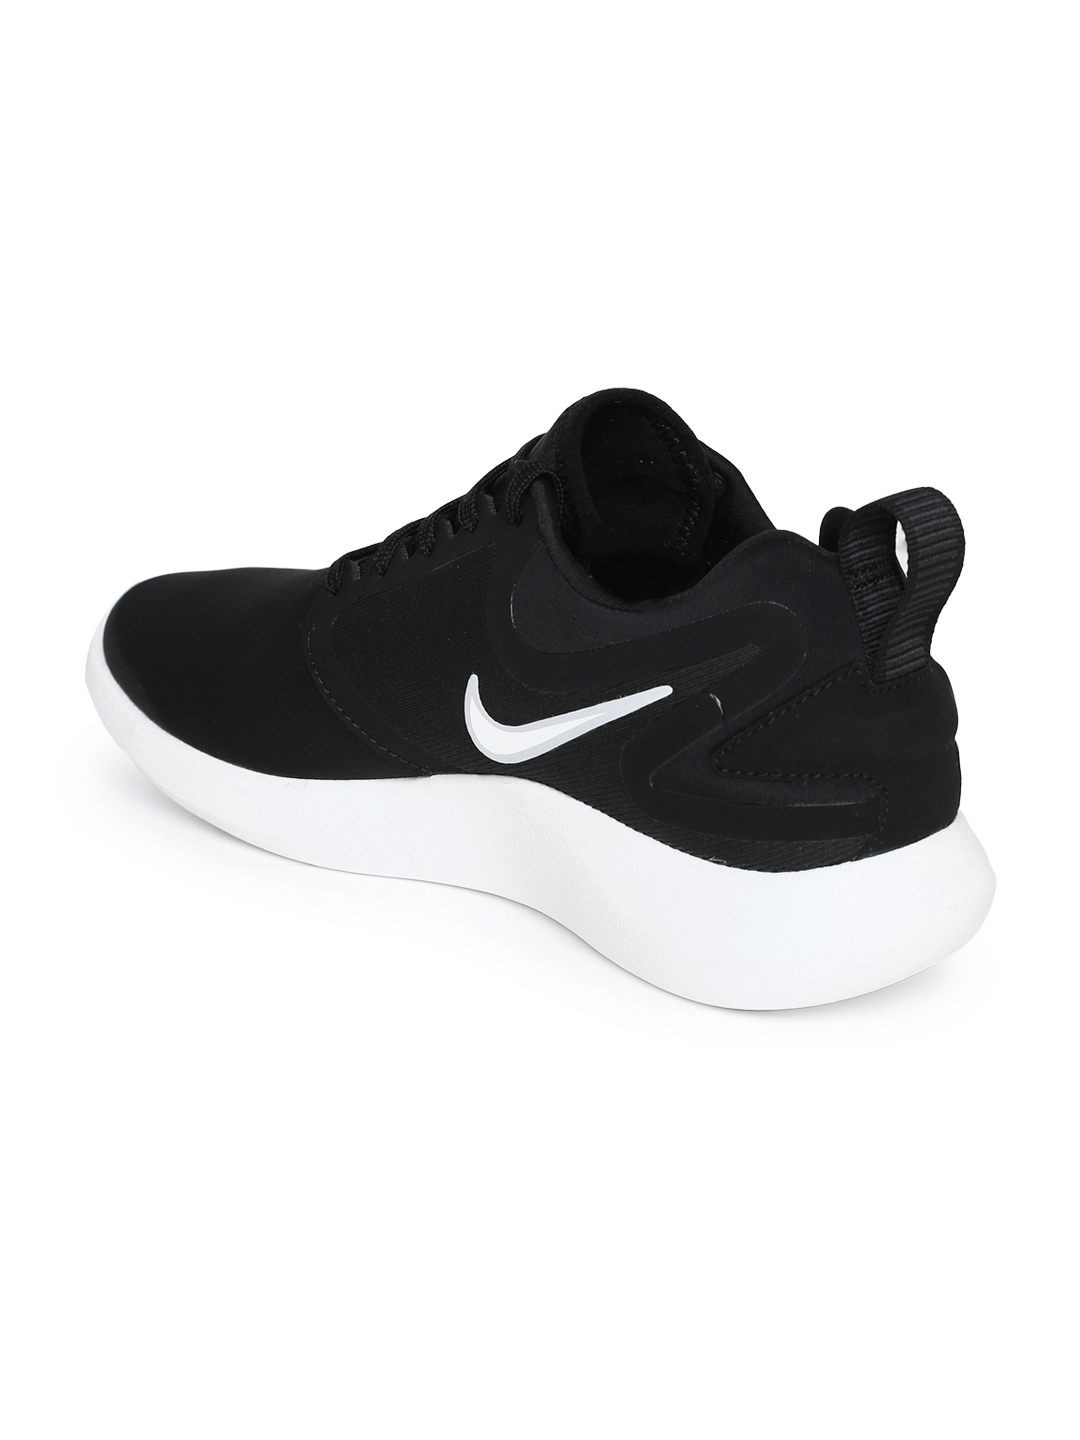 cb97bc1896560 Buy Nike Women Black LUNARSOLO Running Shoes - Sports Shoes for ...